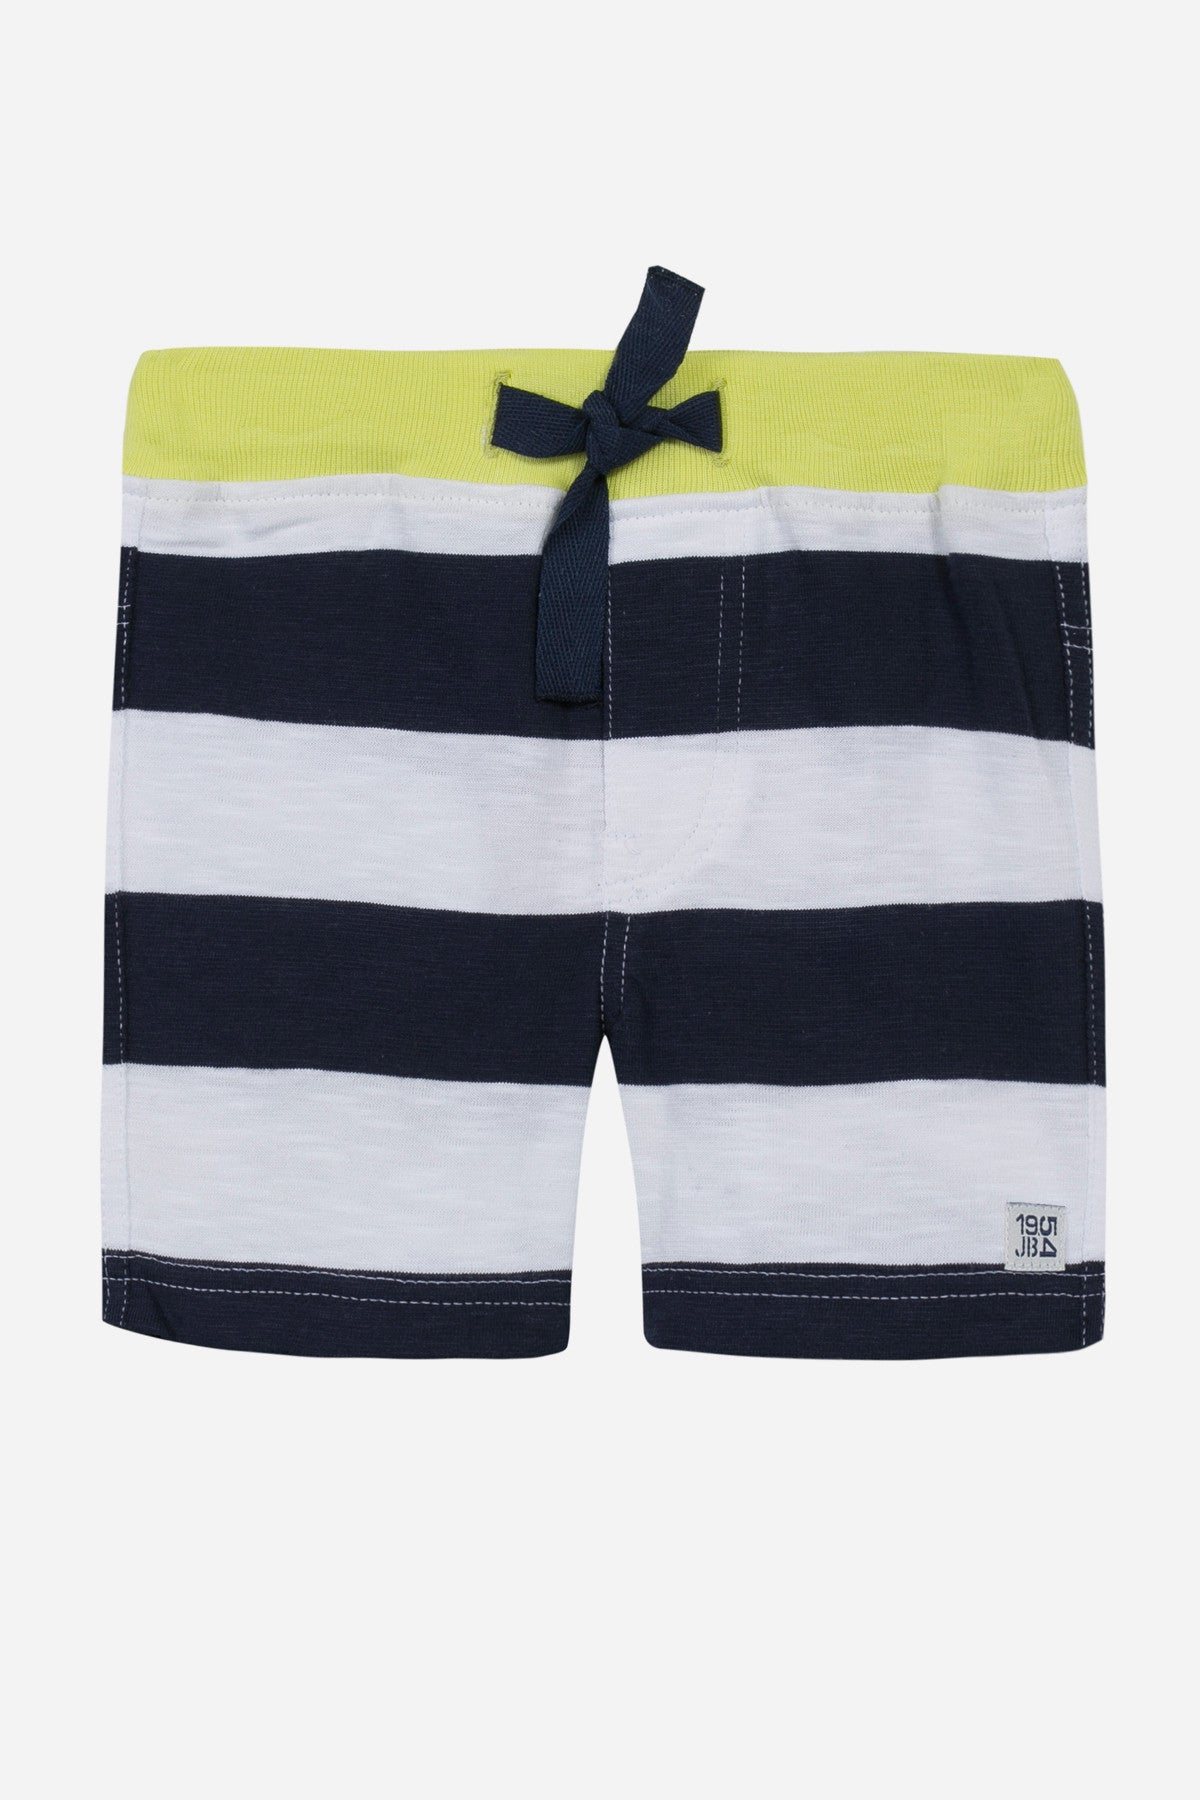 Jean Bourget Baby Boy Striped Shorts